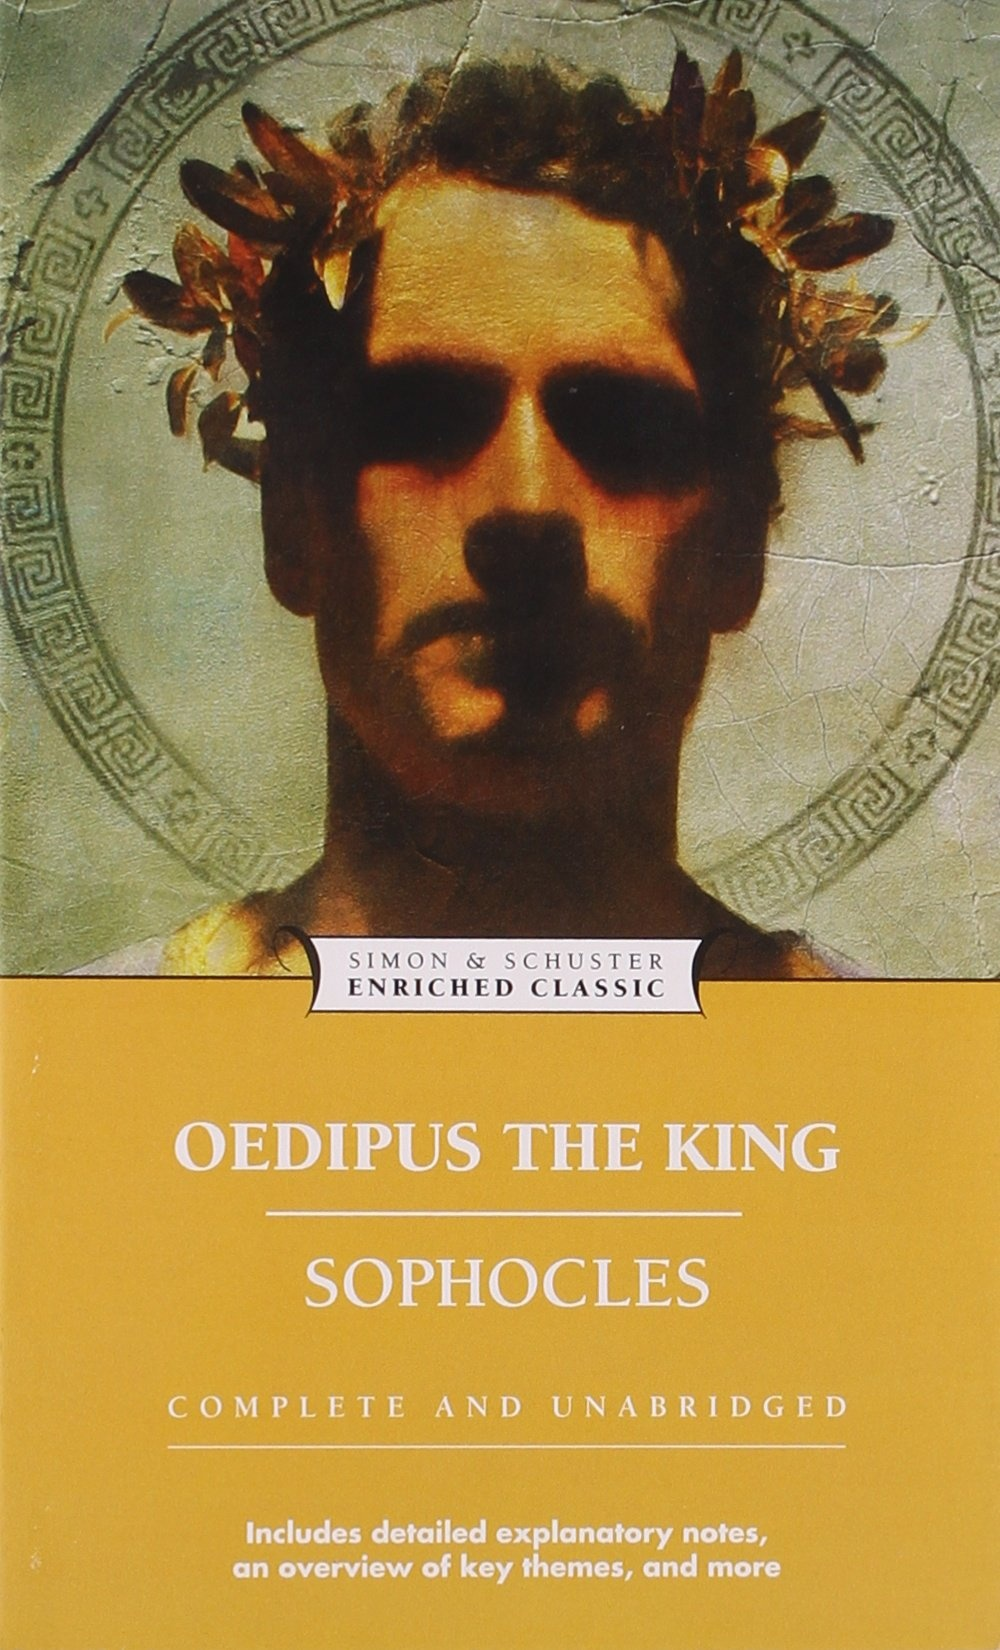 predestined fate in oedipus the king by sophocles Oedipus as a tragic hero oedipus king oedipus can be taken as a typical hero of classical tragedies his defiance of his predestined fate would be.